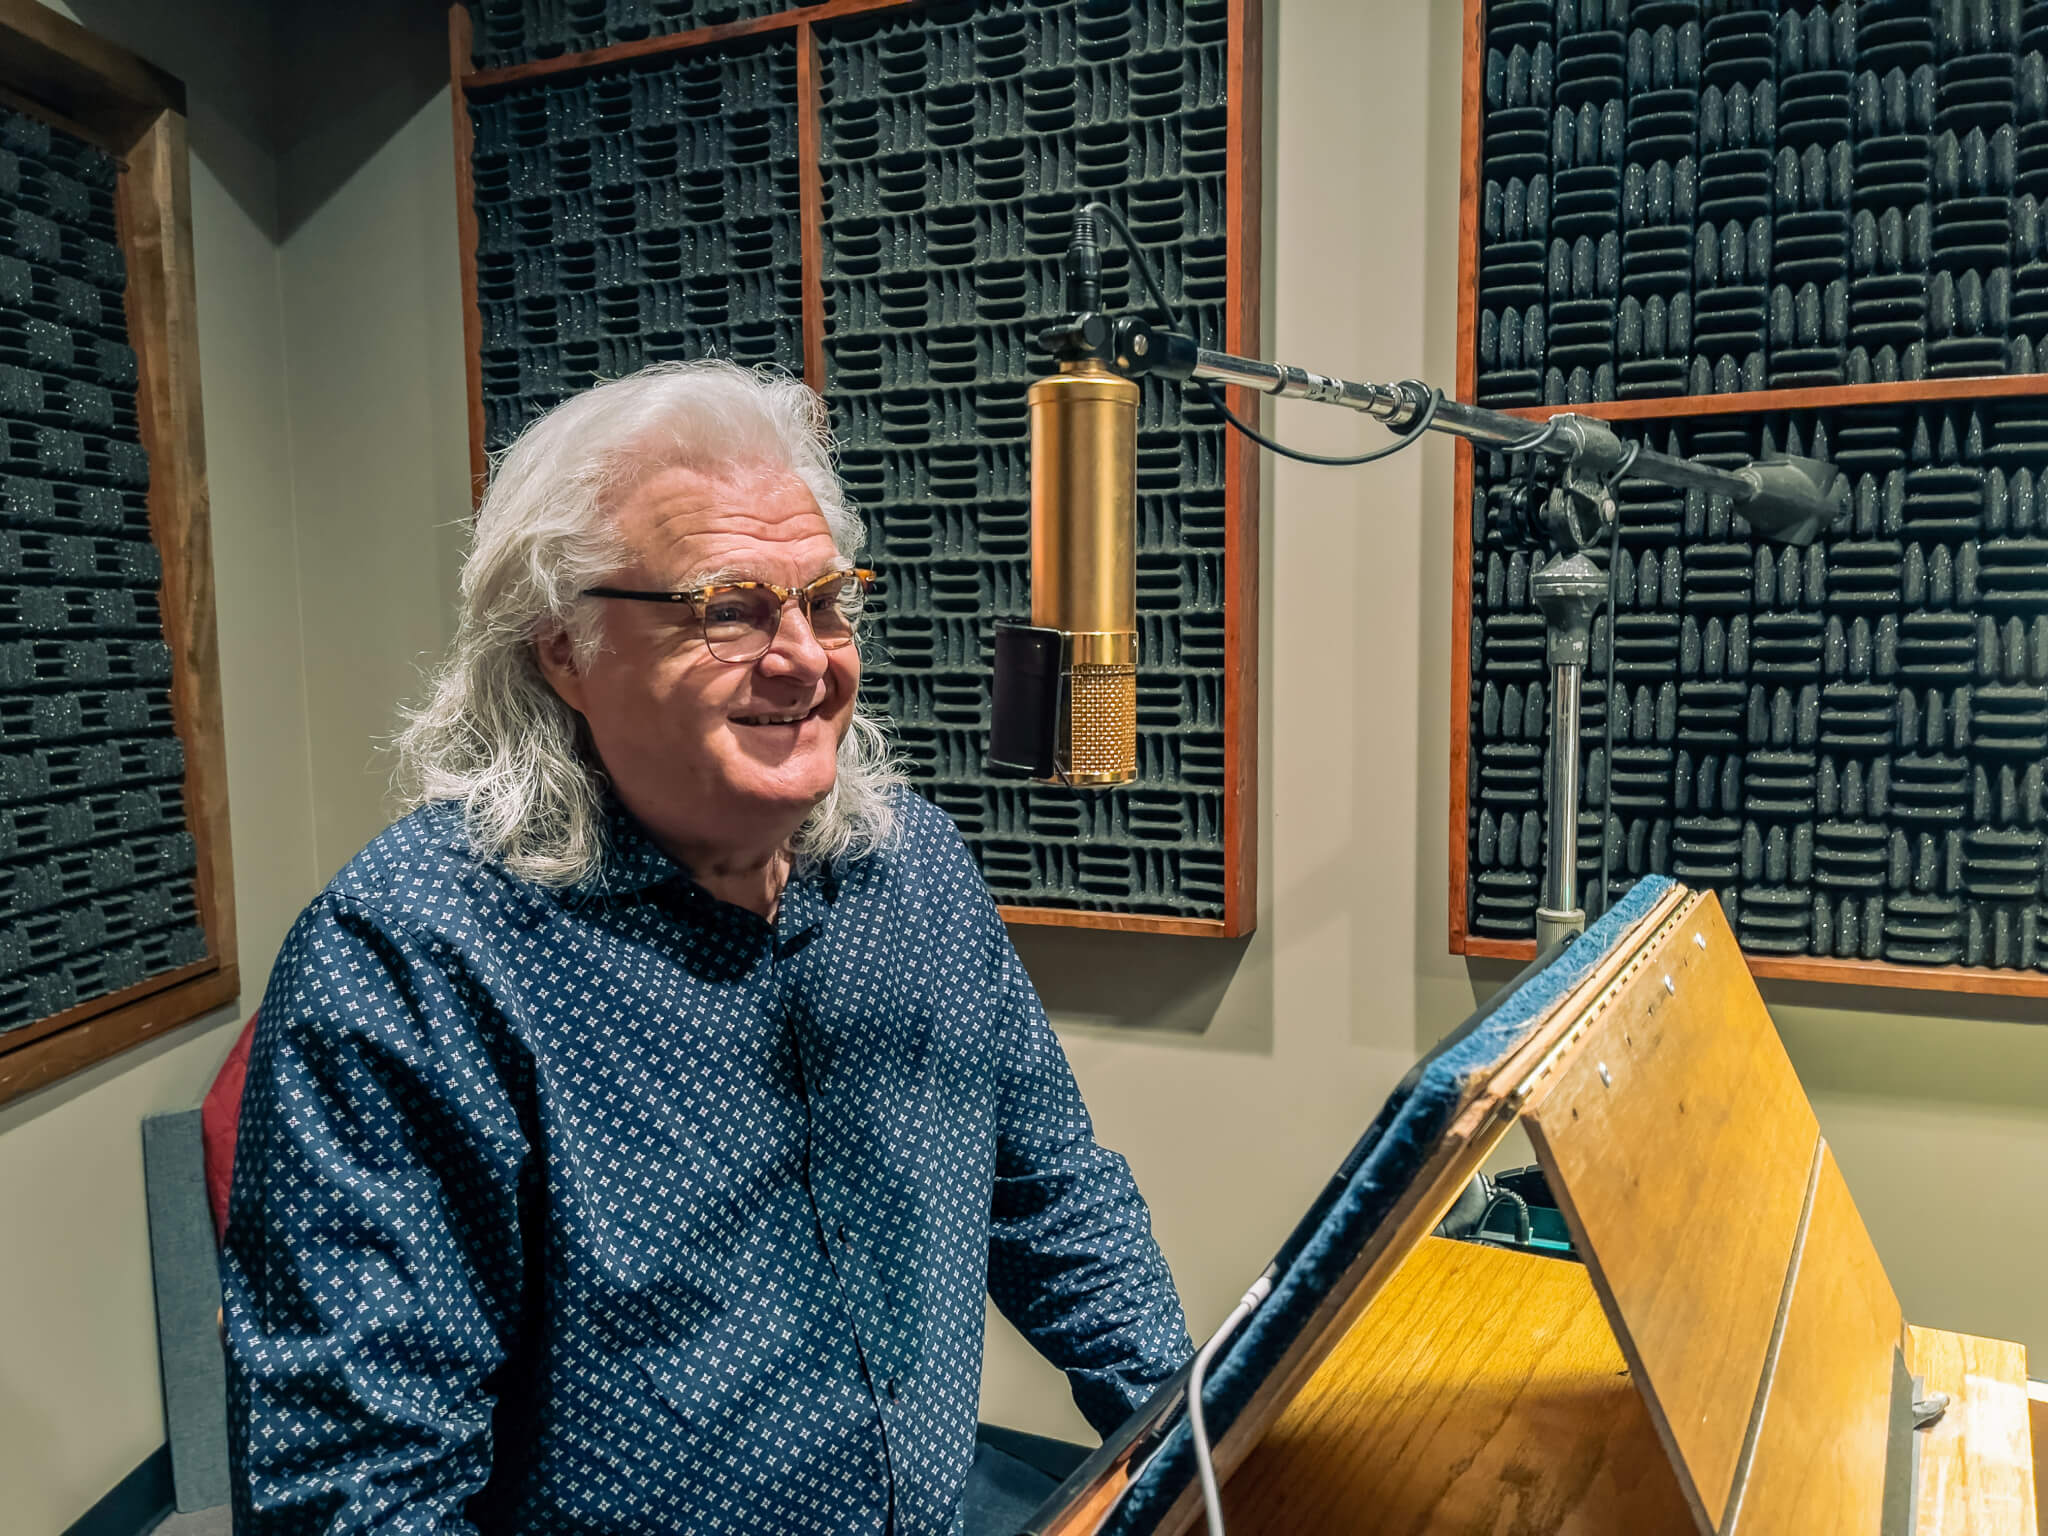 Ricky Skaggs in audio recording booth